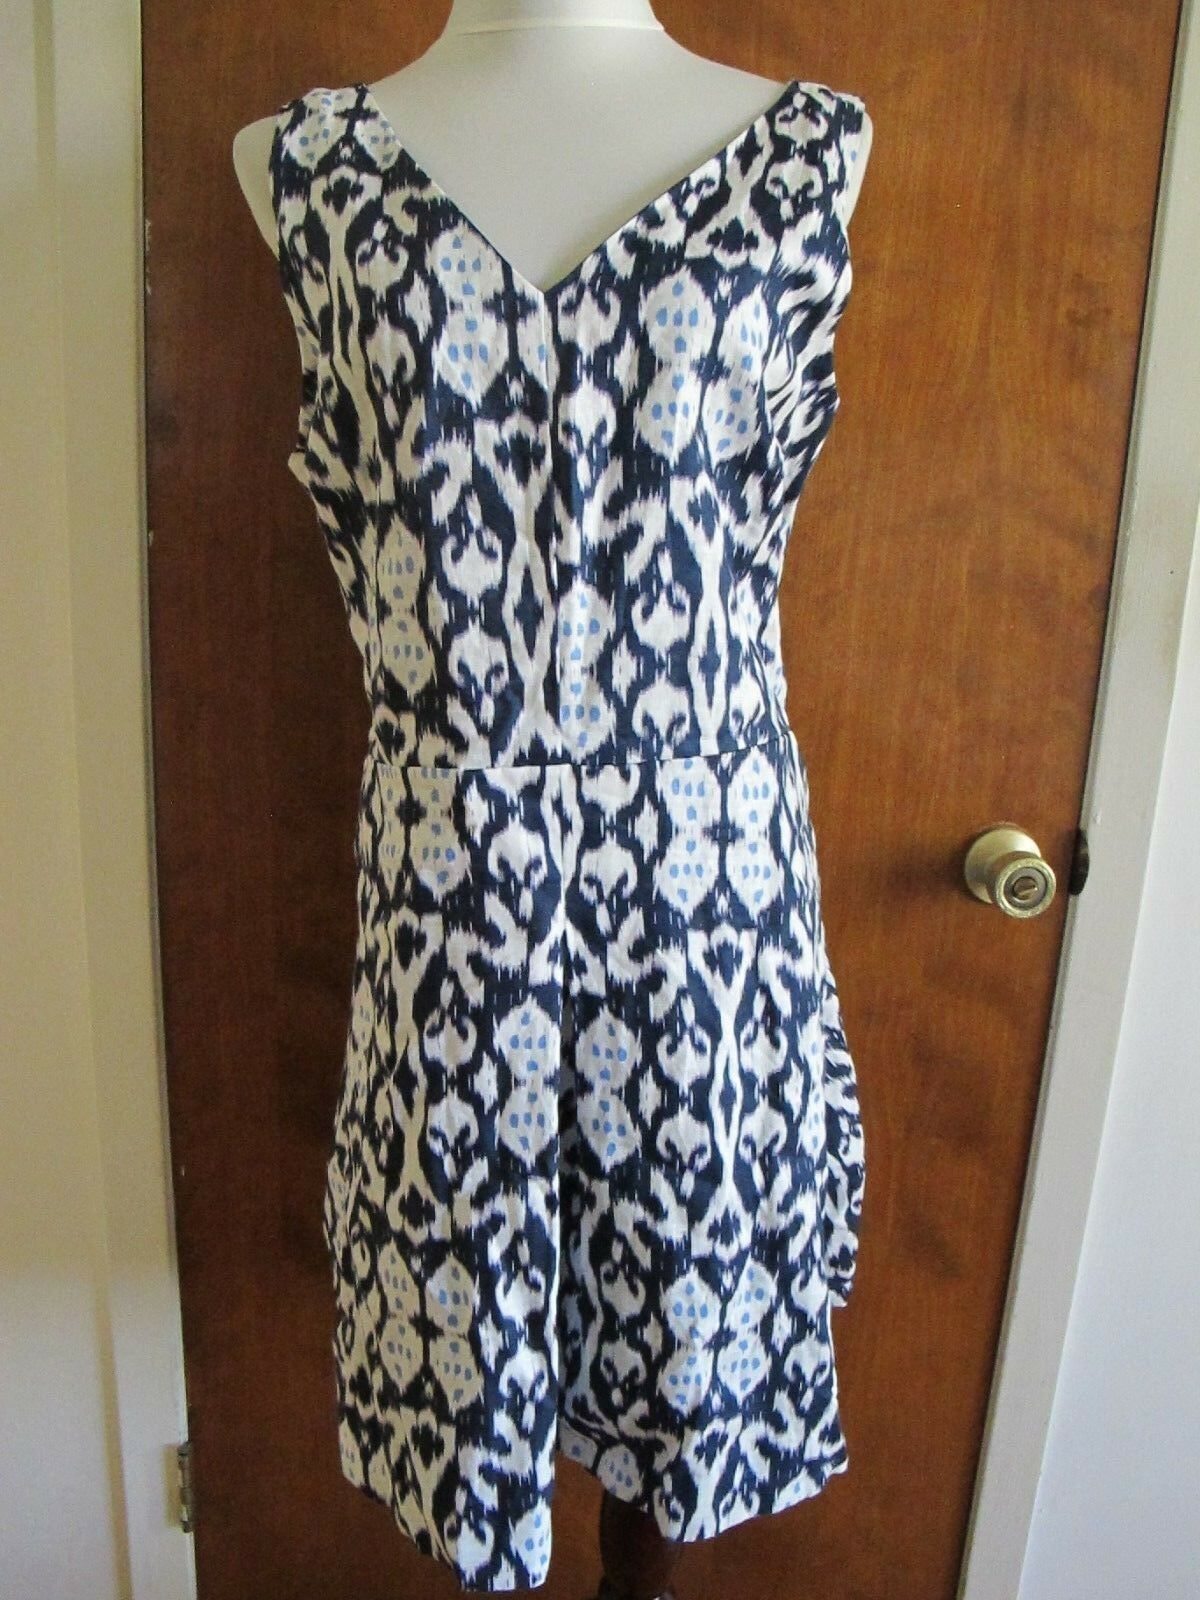 Gap Women's Navy white Linen Lined Dress Size 18 NWT runs small